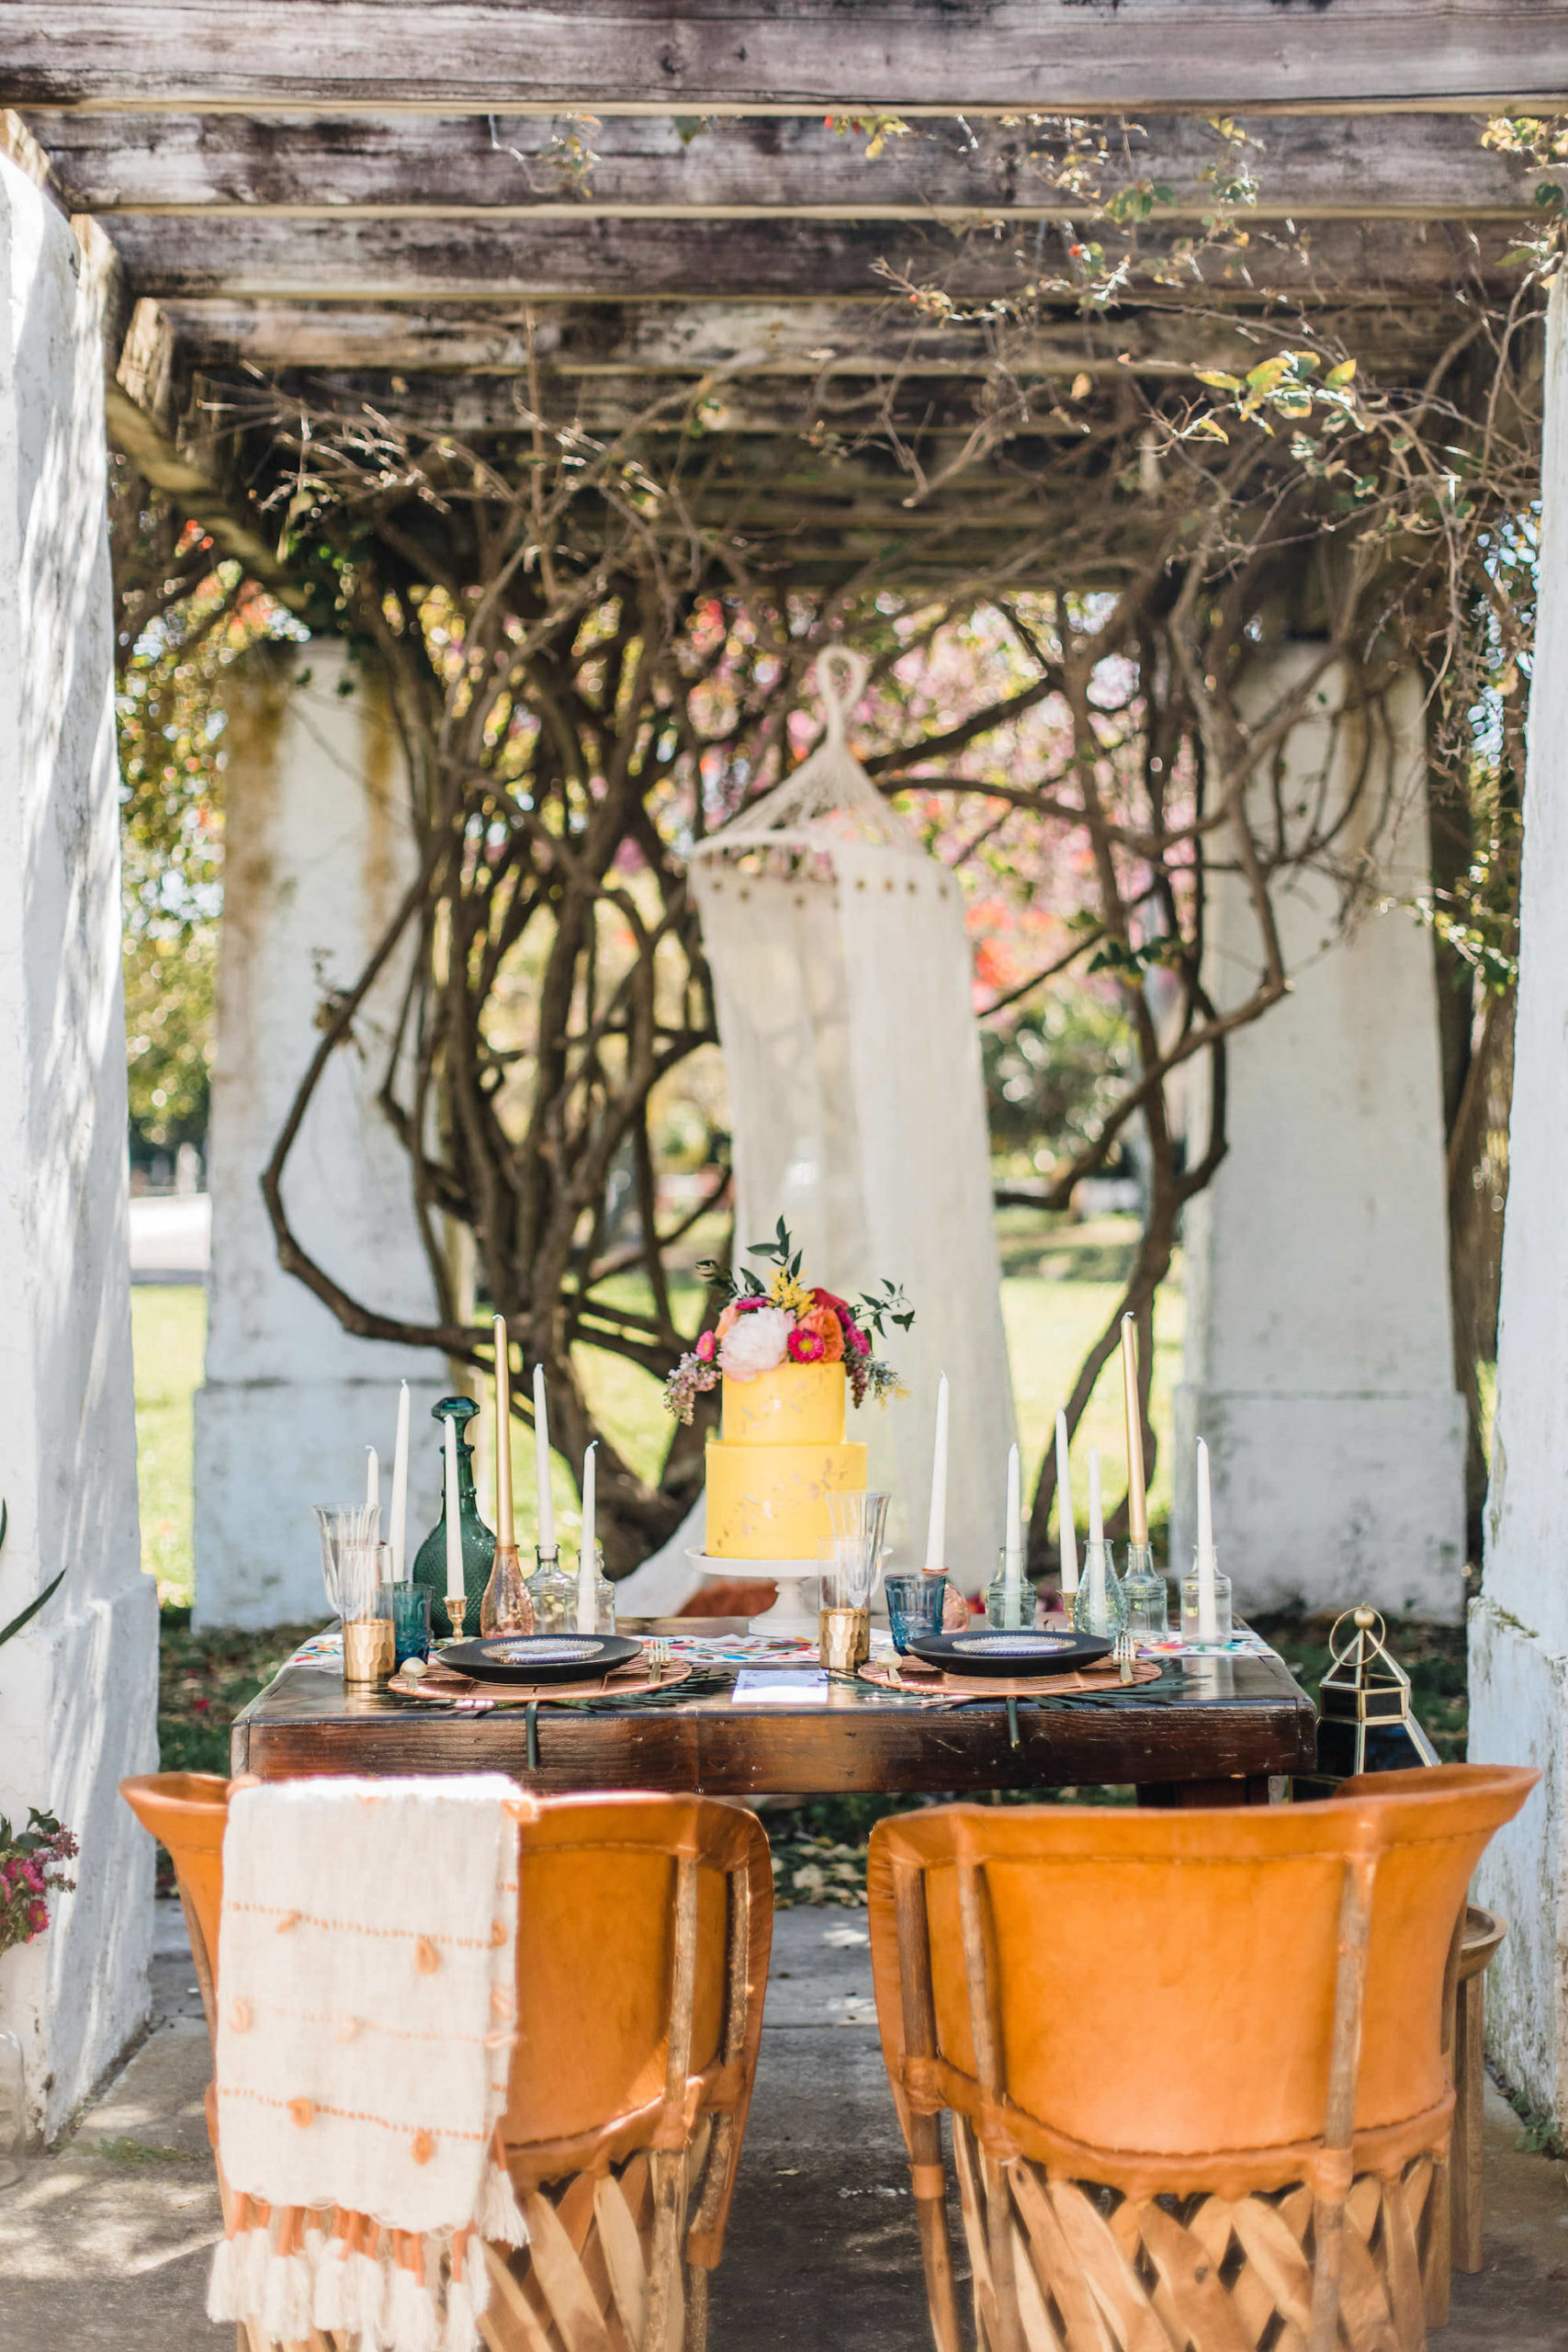 Mexican Inspired Colorful St. Pete Wedding Styled Shoot with Boho Chic Wooden Chairs